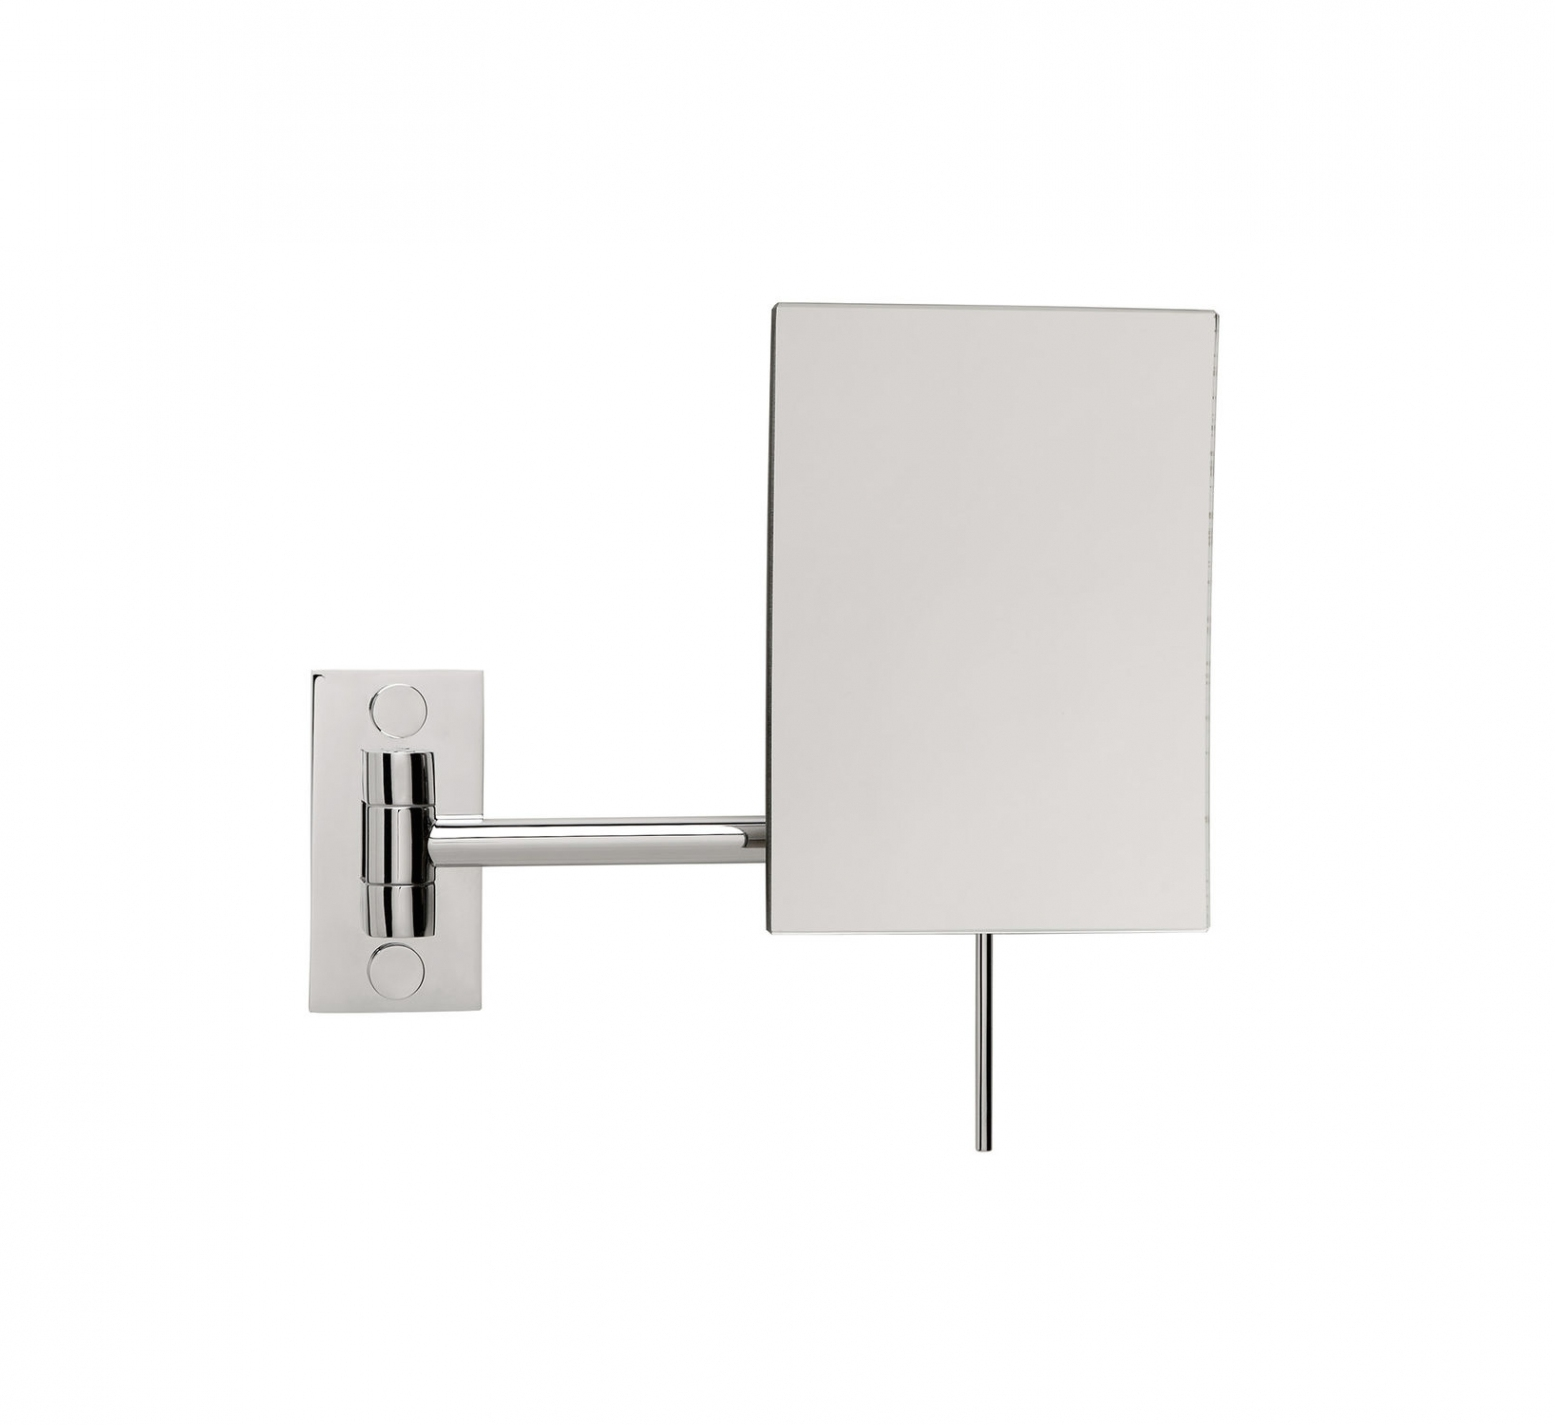 Permalink to Adjustable Wall Mounted Bathroom Mirror